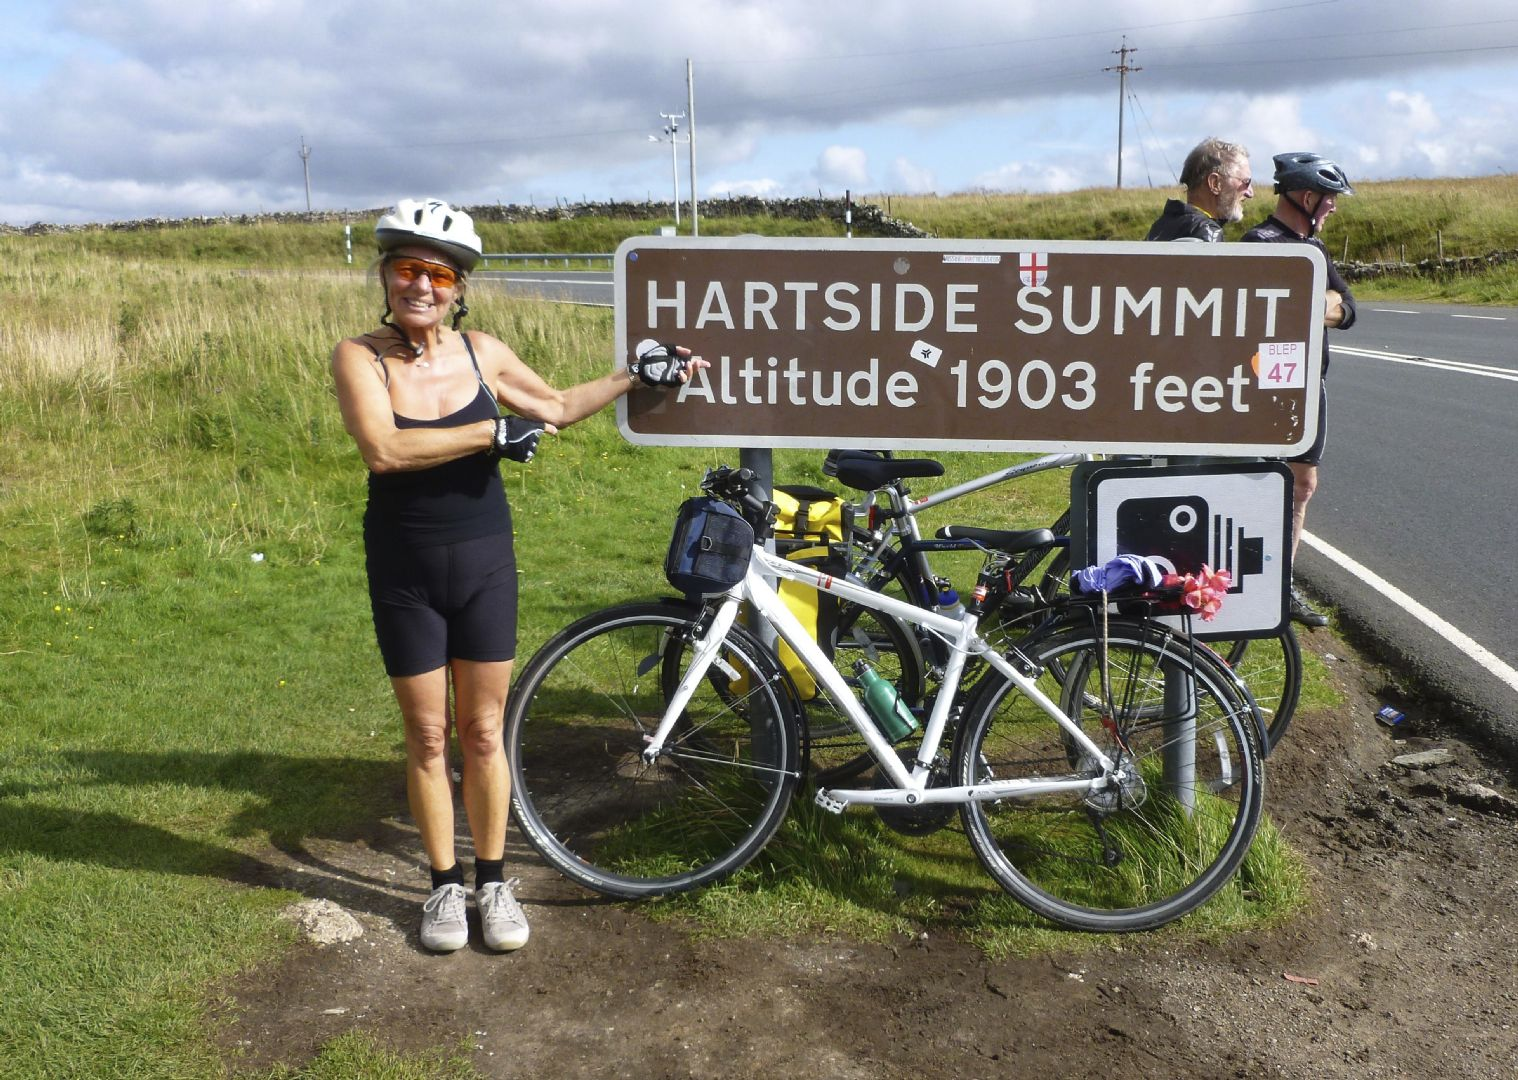 _Customer.36813.6976.jpg - UK - C2C - Coast to Coast 4 Days Cycling - Self-Guided Leisure Cycling Holiday - Leisure Cycling